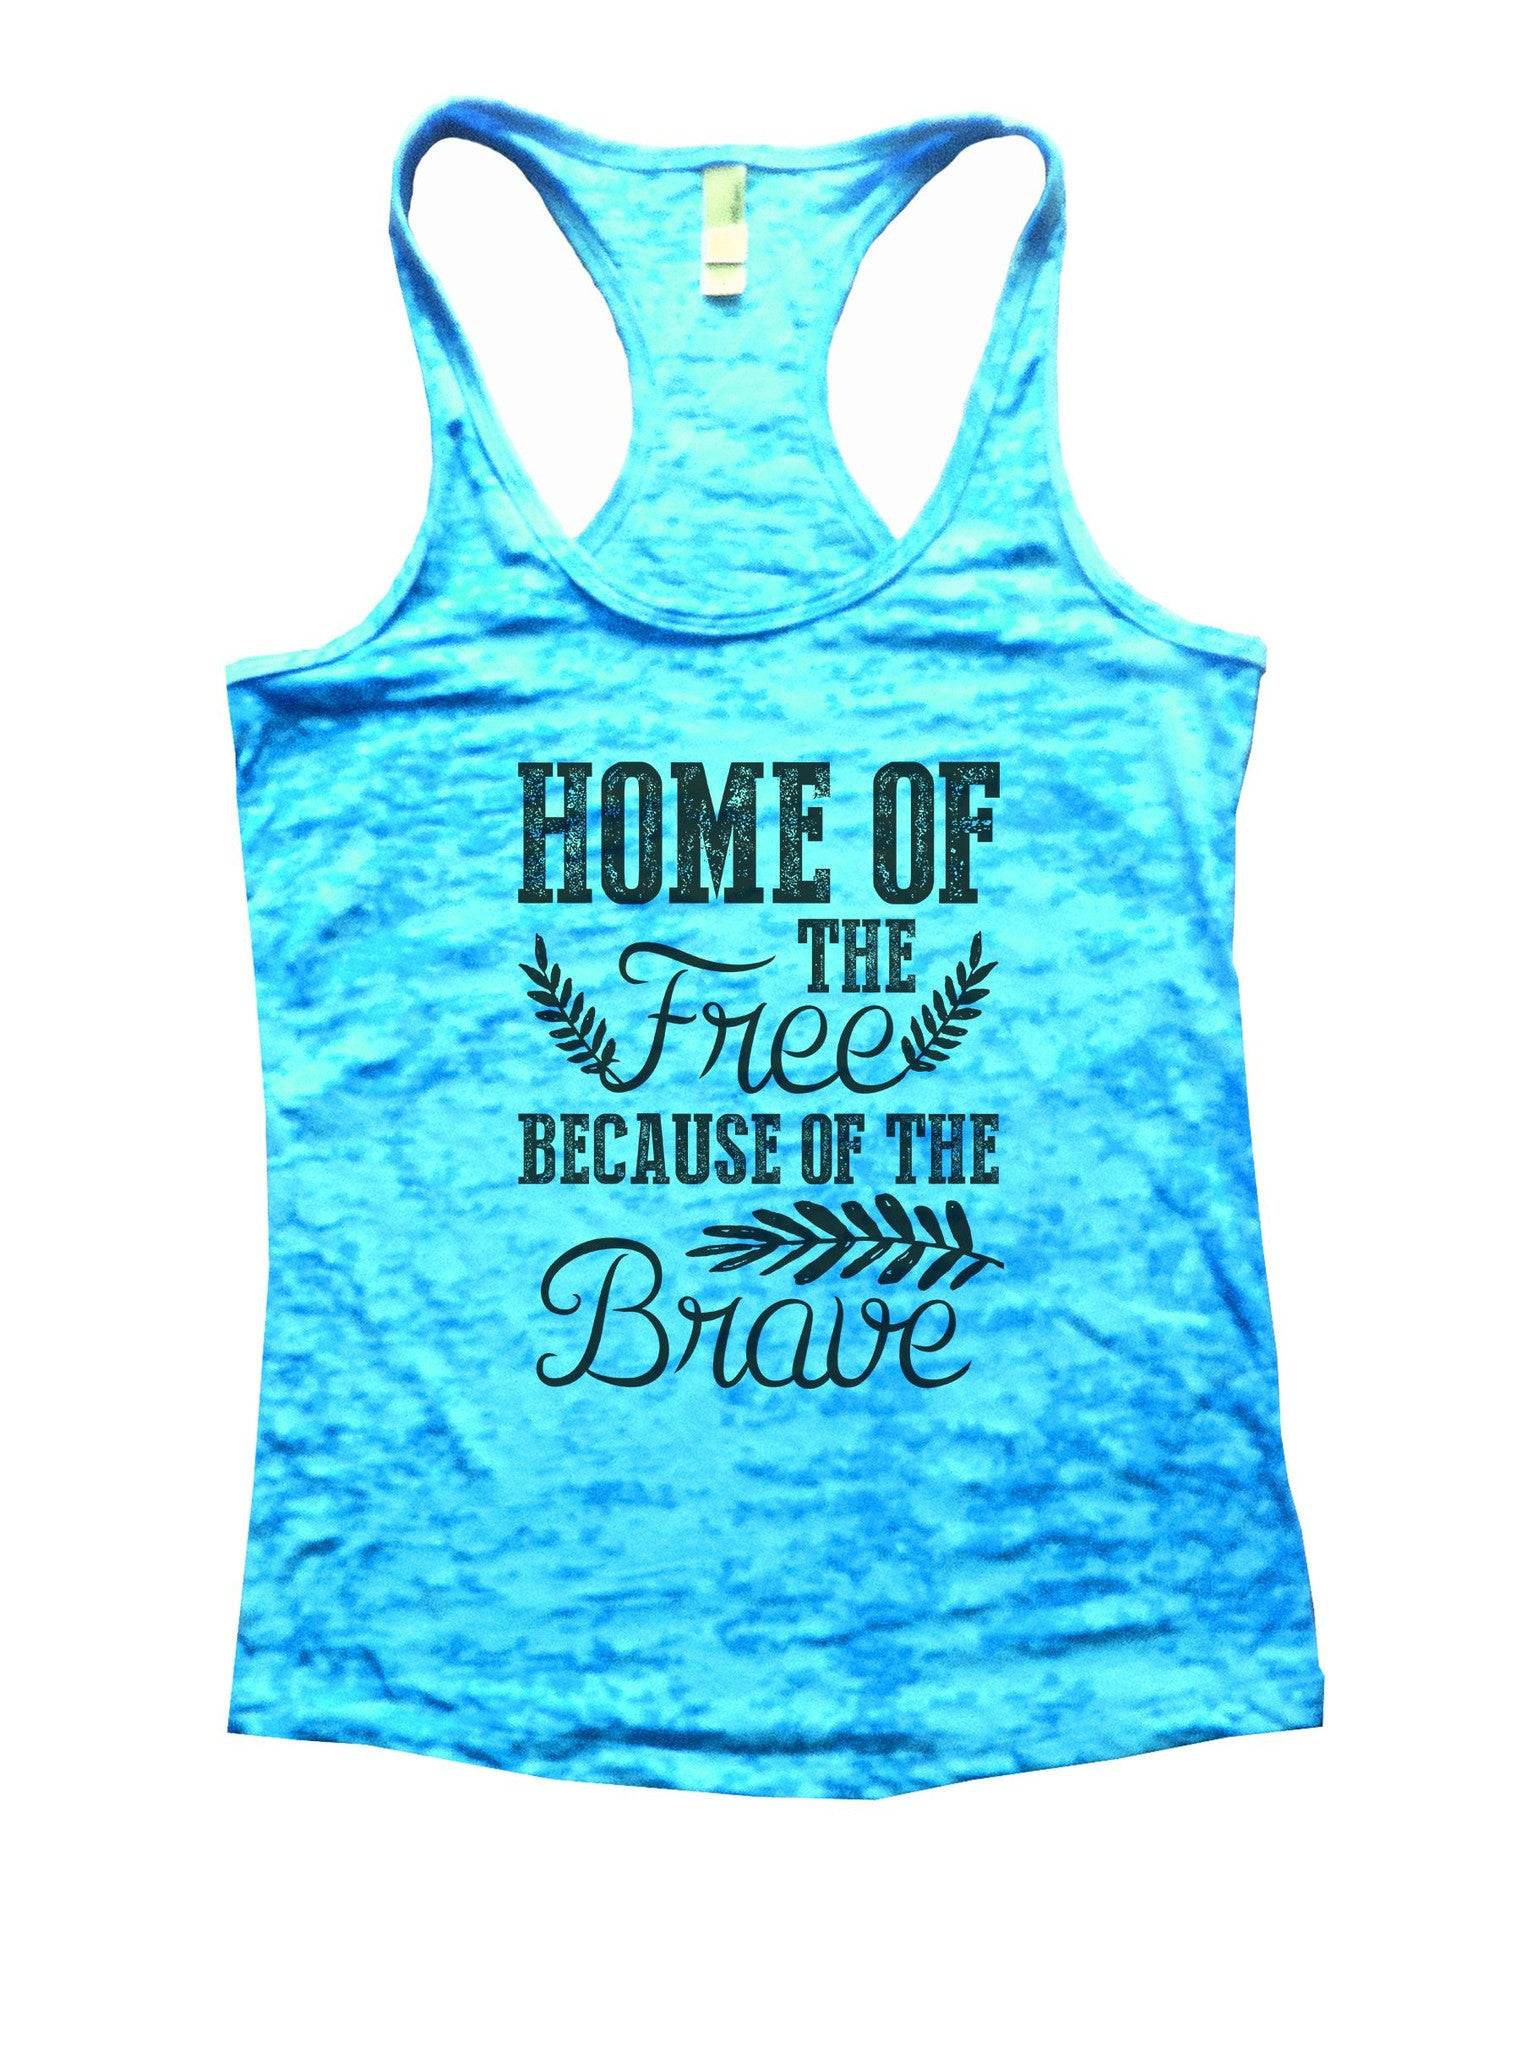 Home Of The Free Because Of The Brave Burnout Tank Top By BurnoutTankTops.com - 978 - Funny Shirts Tank Tops Burnouts and Triblends  - 4